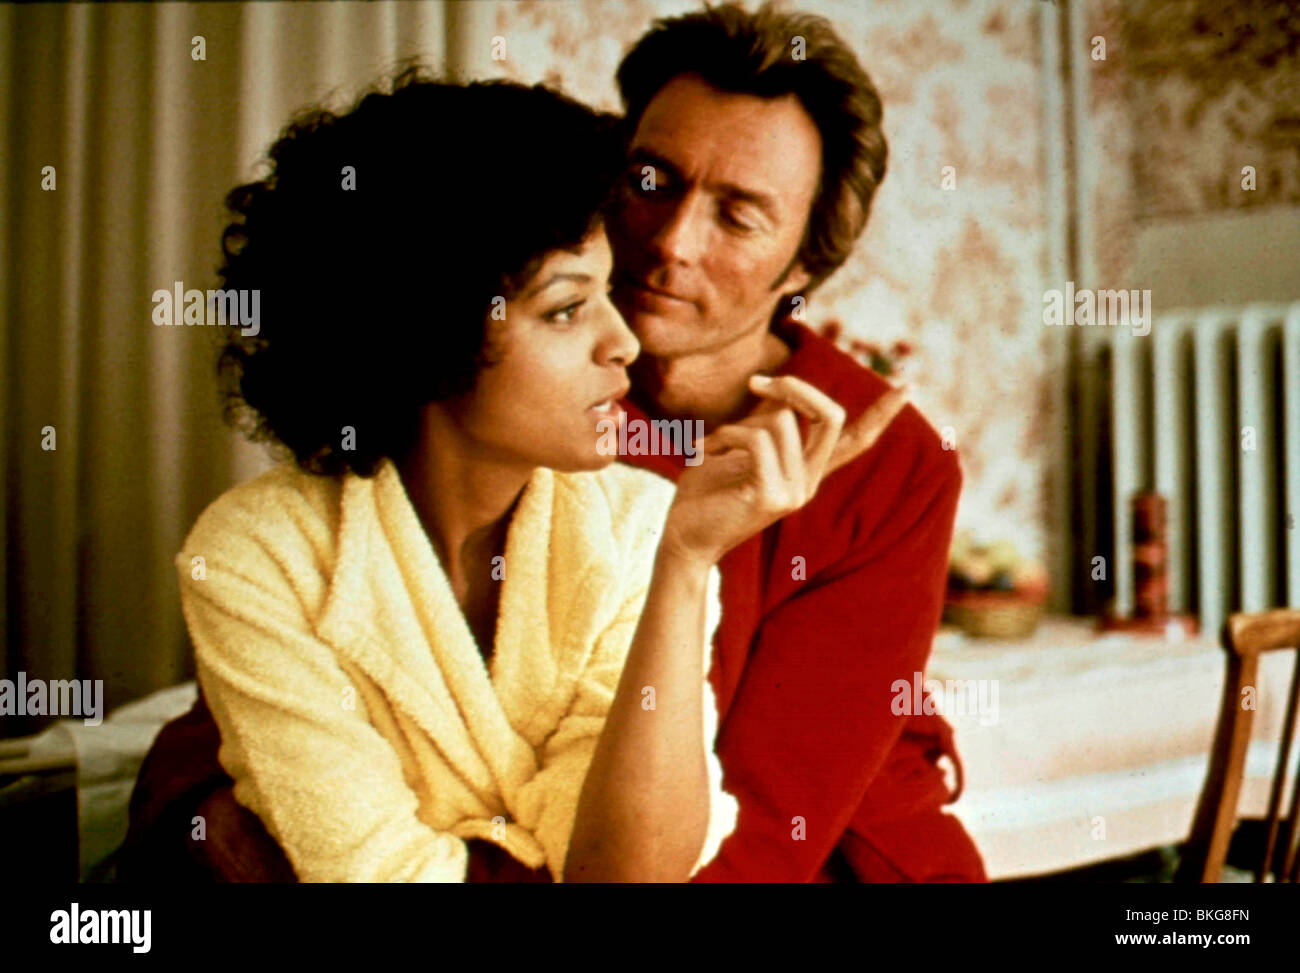 Image result for Vonetta McGee